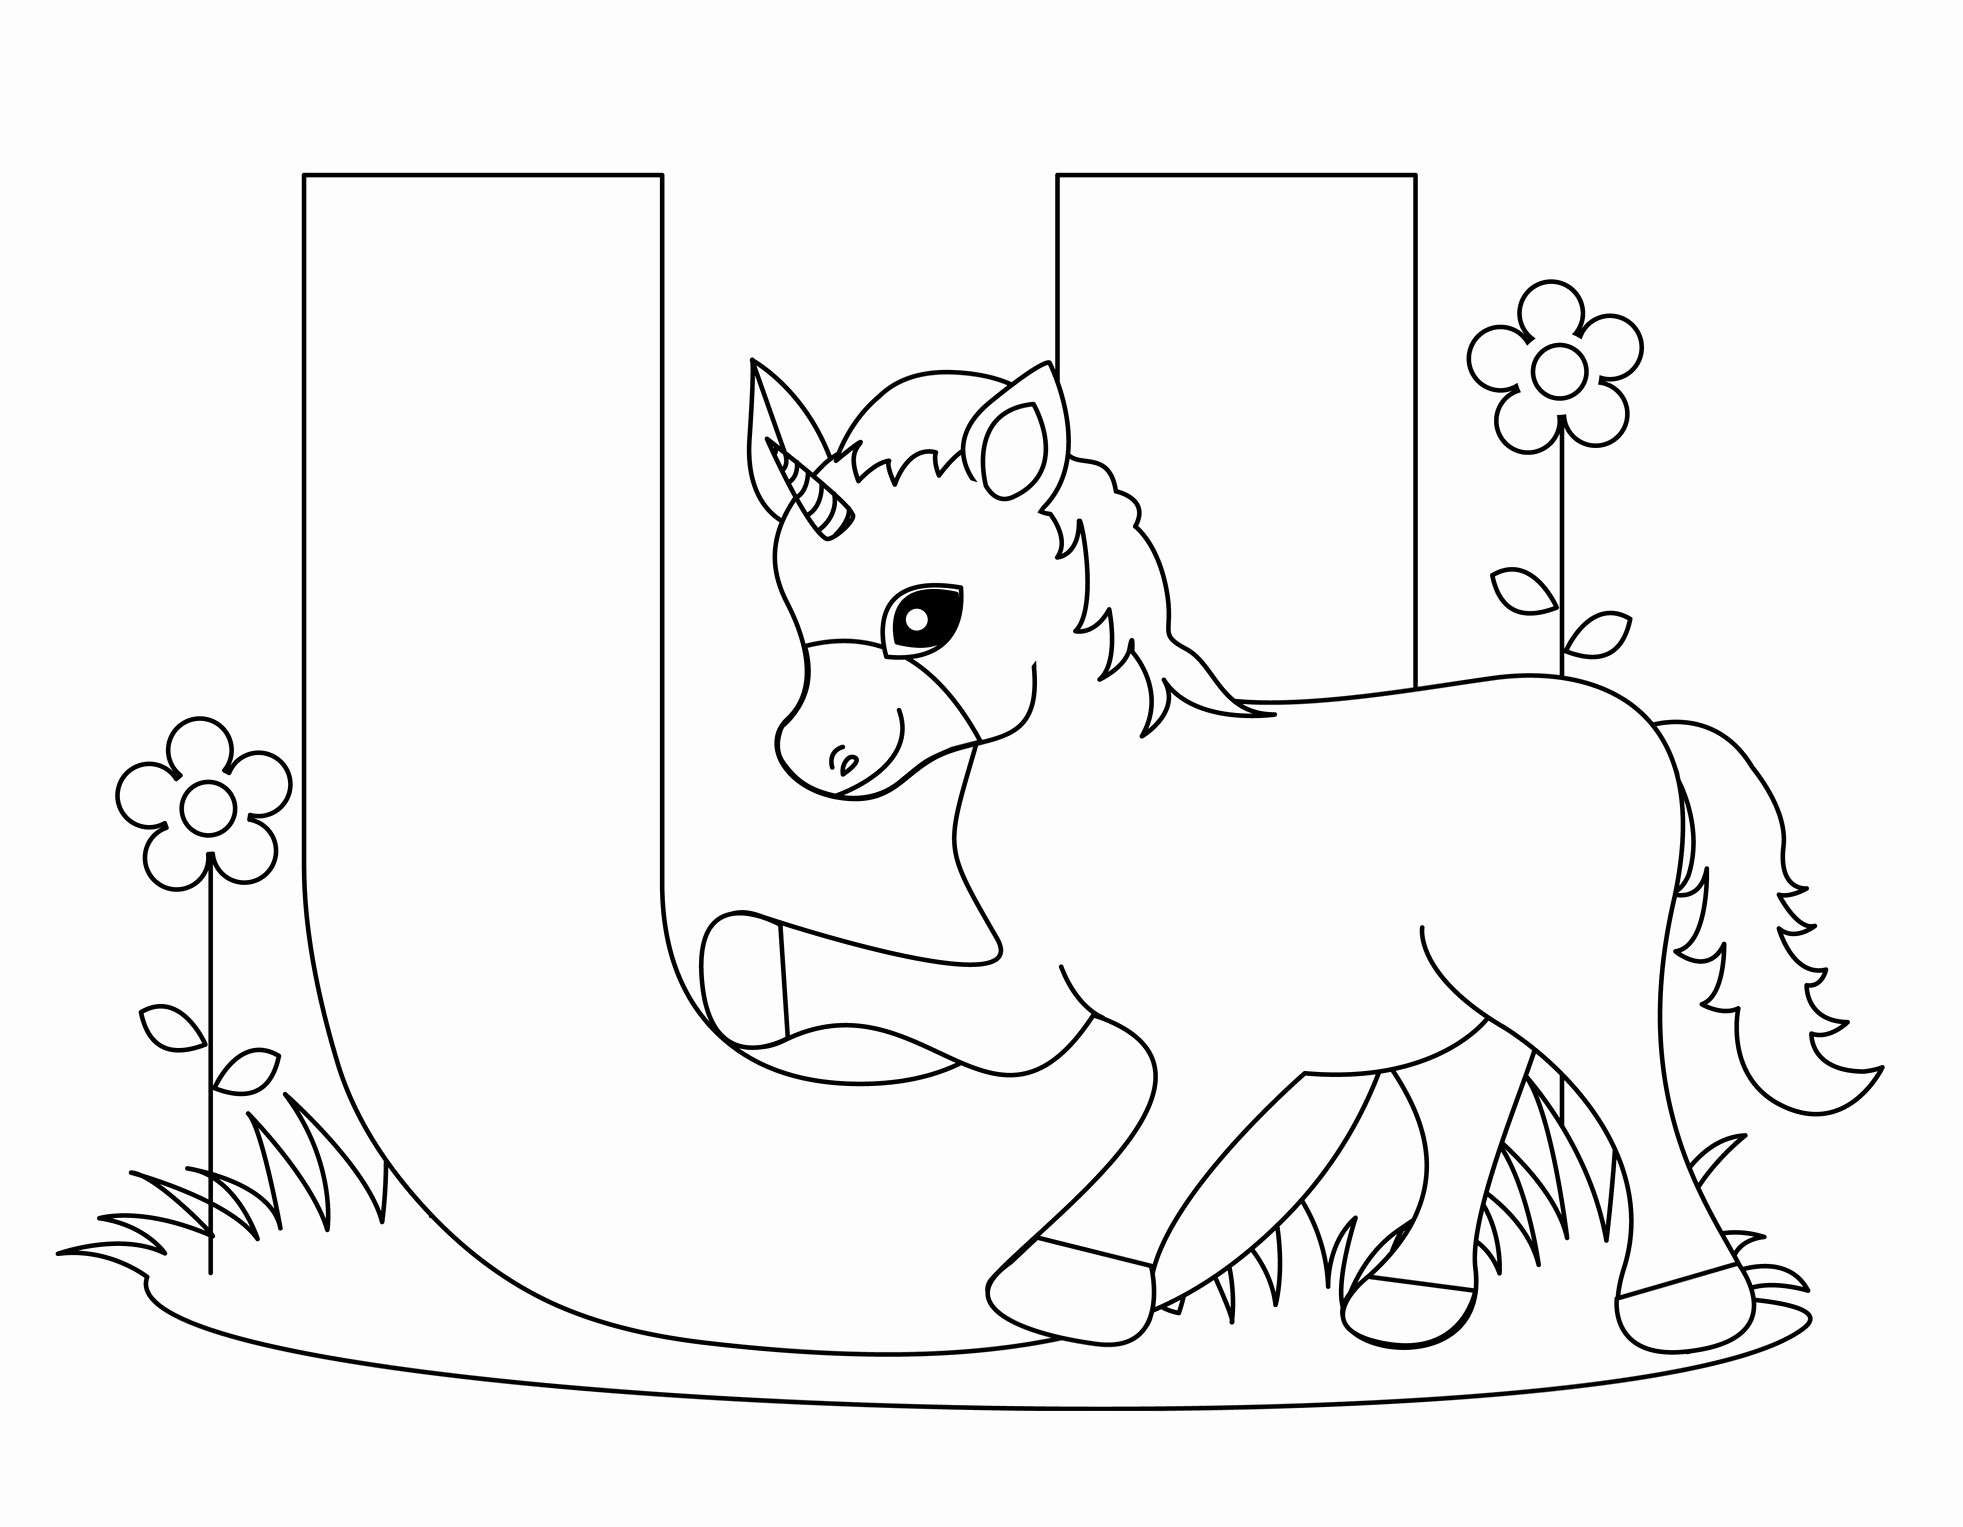 Printable Alphabet Coloring Pages | Popisgrzegorz - Free Printable Alphabet Coloring Pages